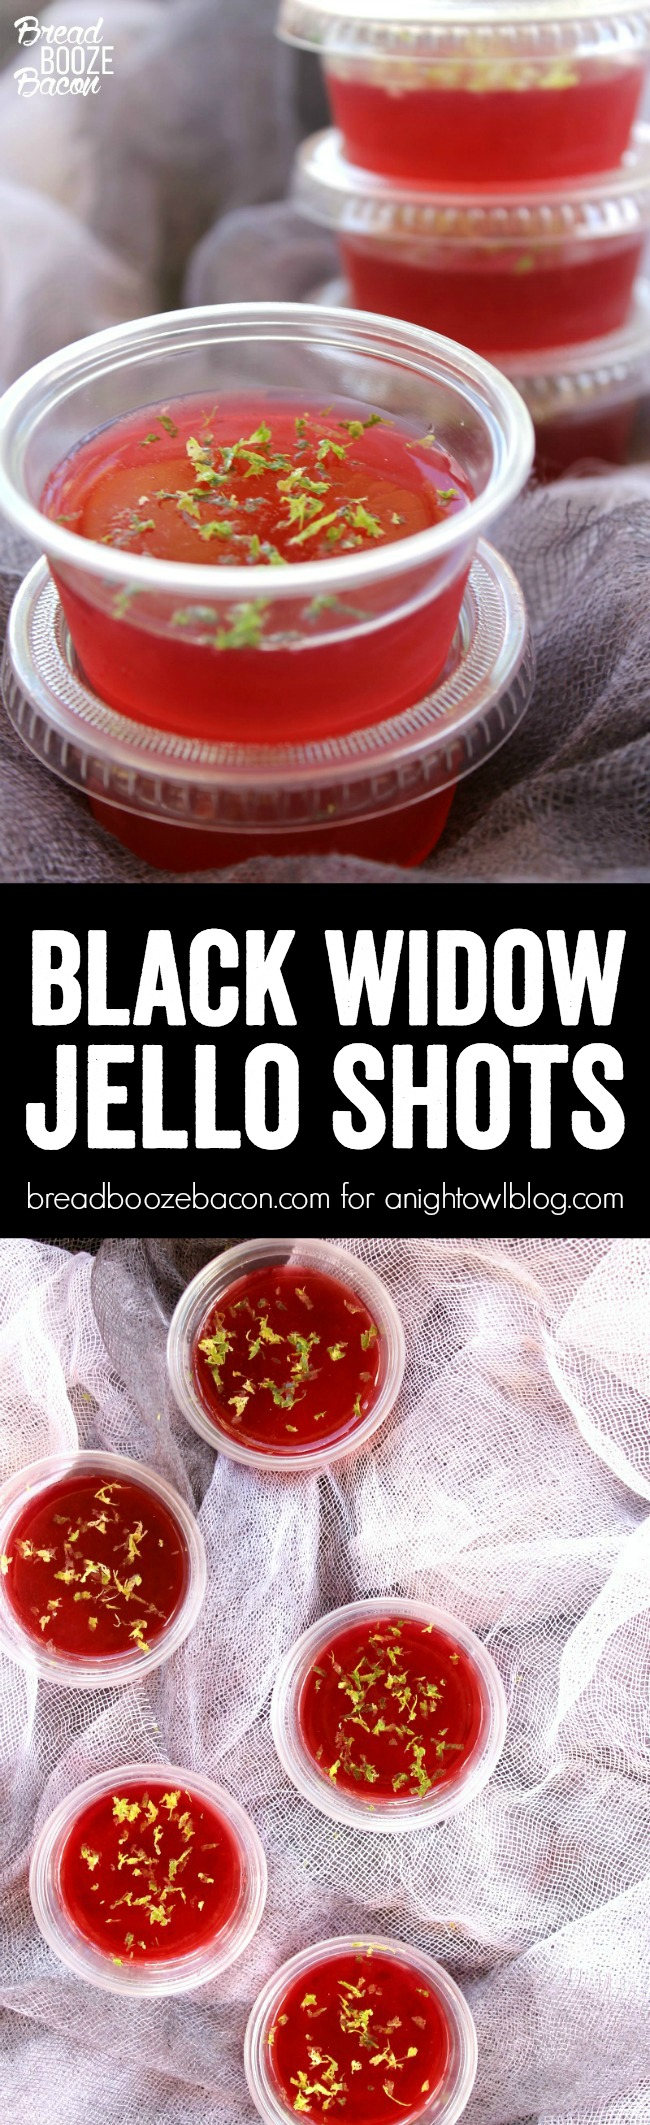 Black Widow Jello Shots are an easy to make margarita shot with fresh flavors that'll ensnare your senses!